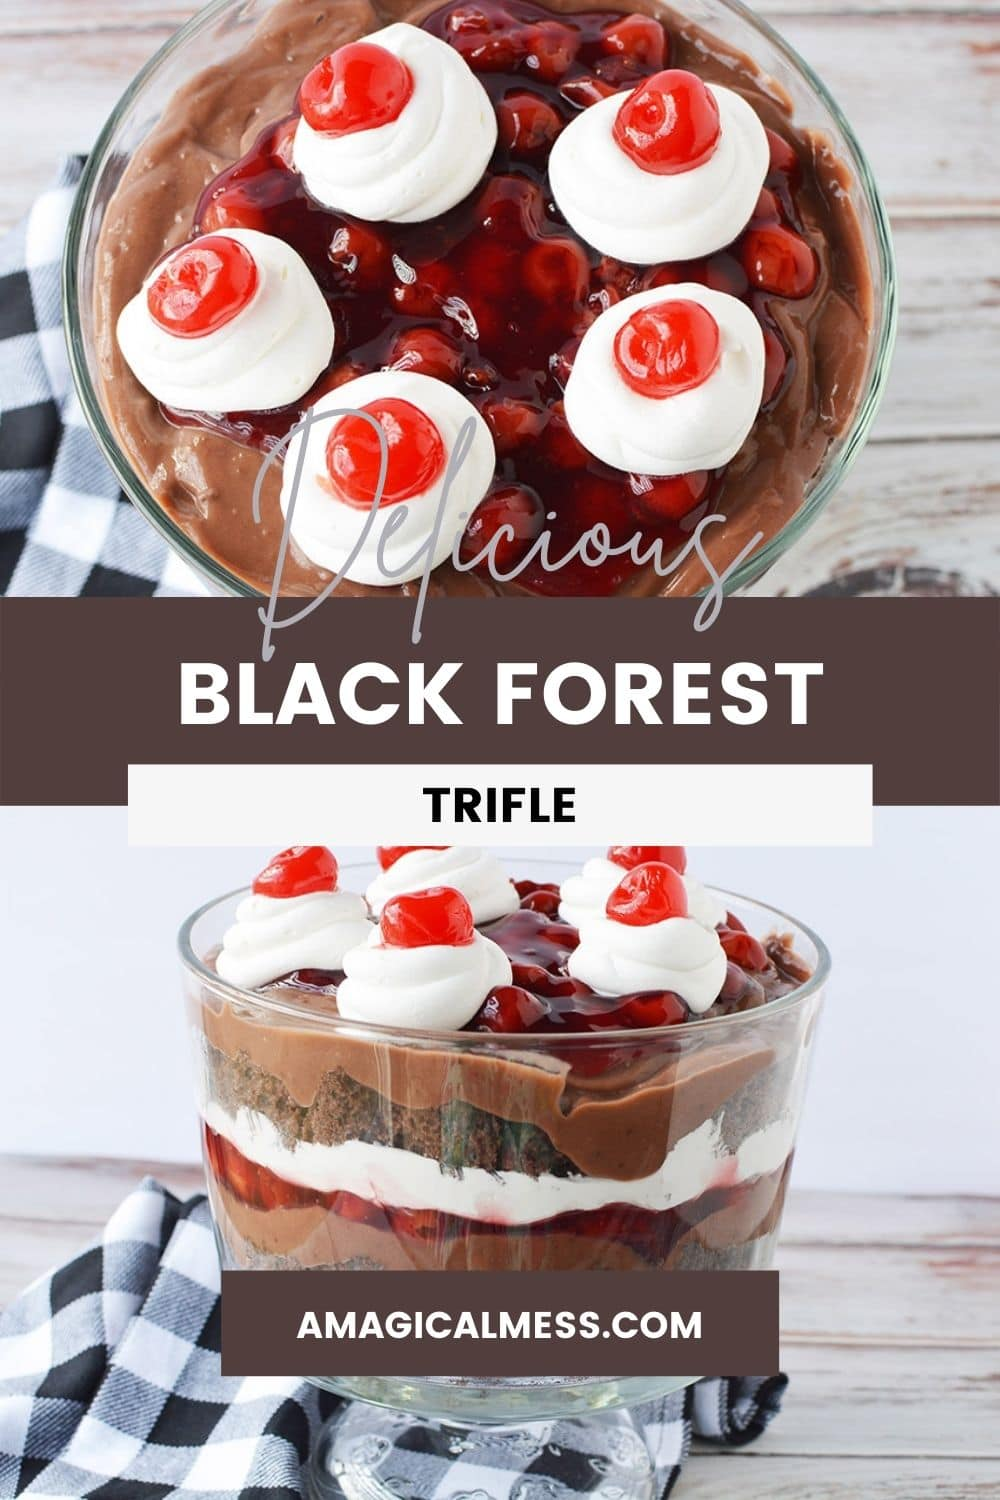 Top of a trifle topped with cherries and black forest trifle in a bowl.